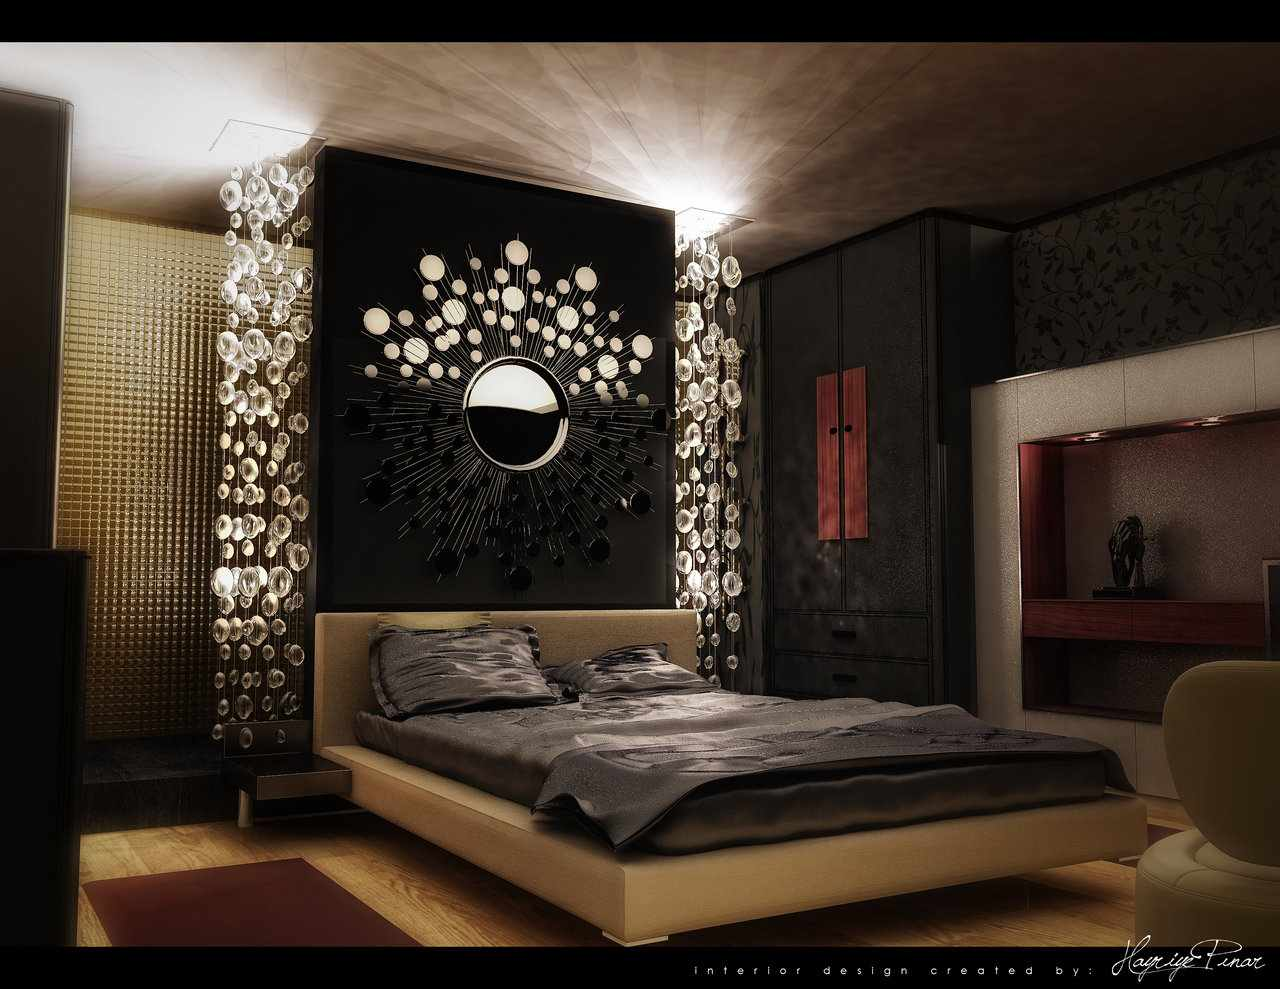 ikea bedroom ideas ikea bedroom 2014 ideas On bedroom design inspiration